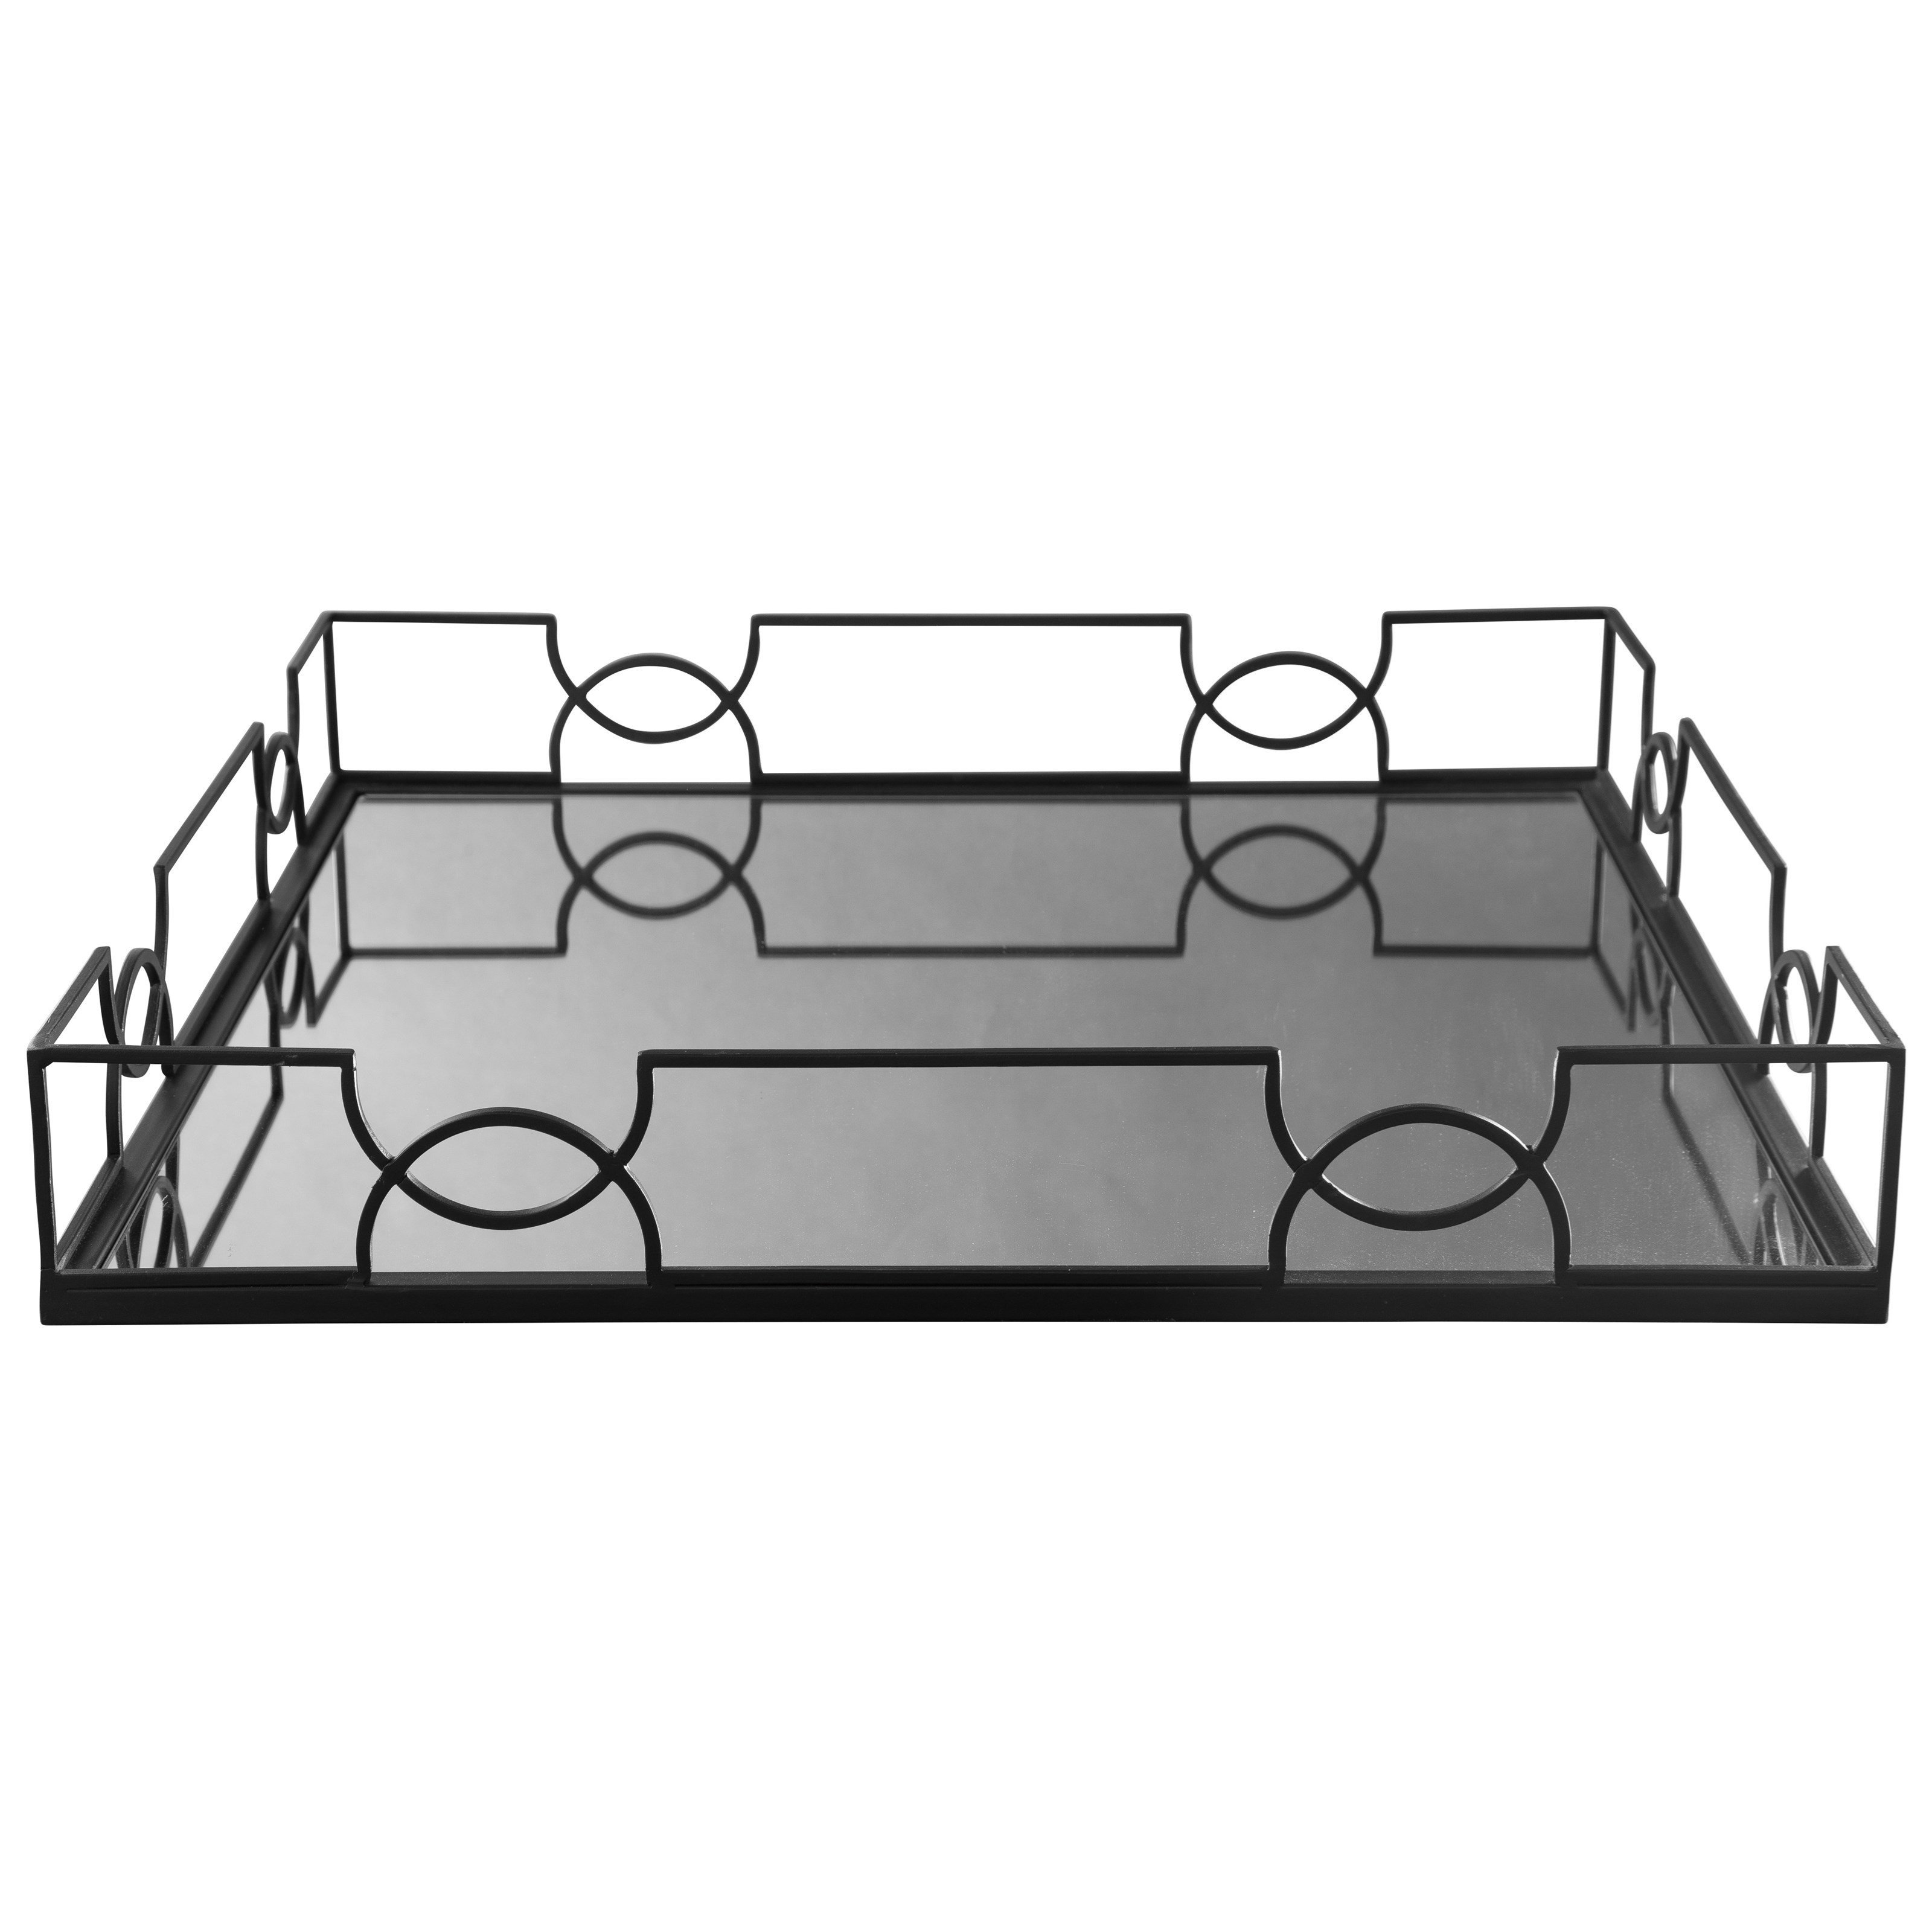 Signature Design by Ashley Accents Dionicio Black/Mirror Tray - Item Number: A2000361